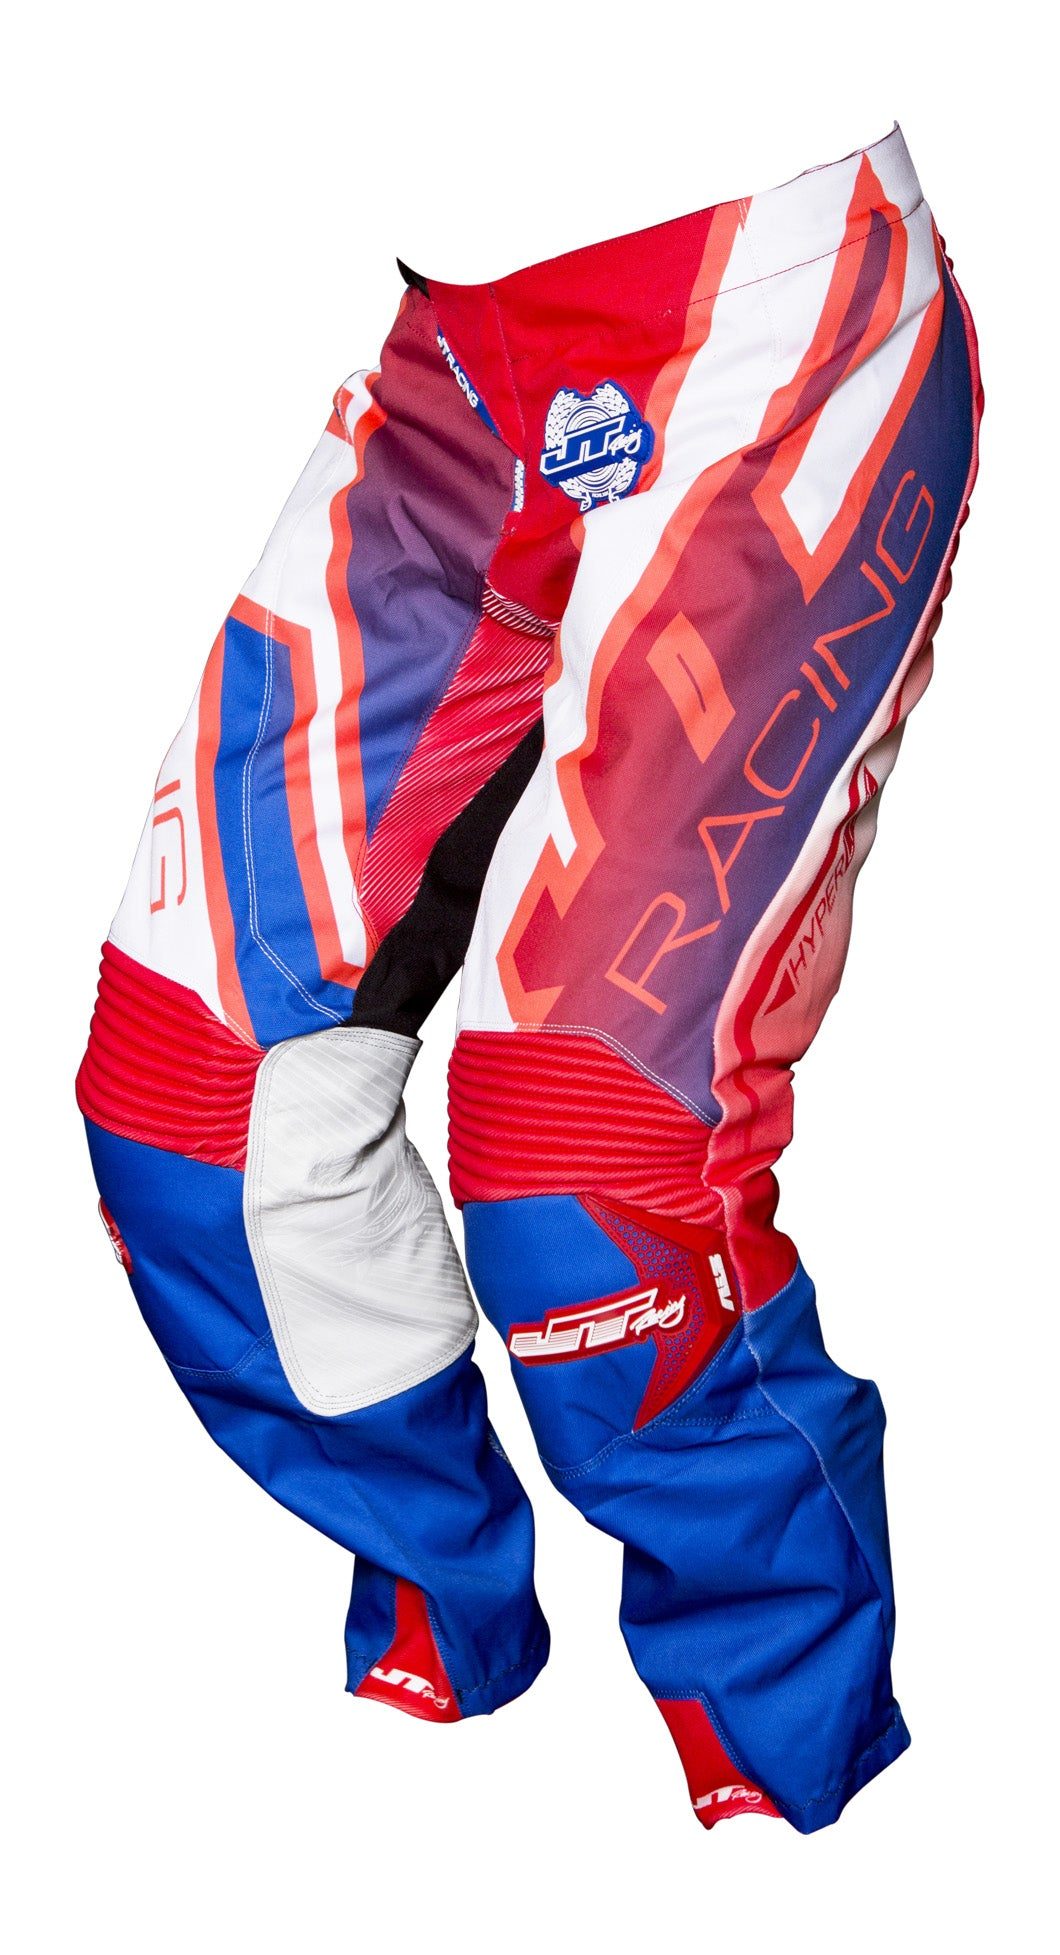 JT RACING USA-2017 Hyperlite Revert Pants, Blue/Red/White